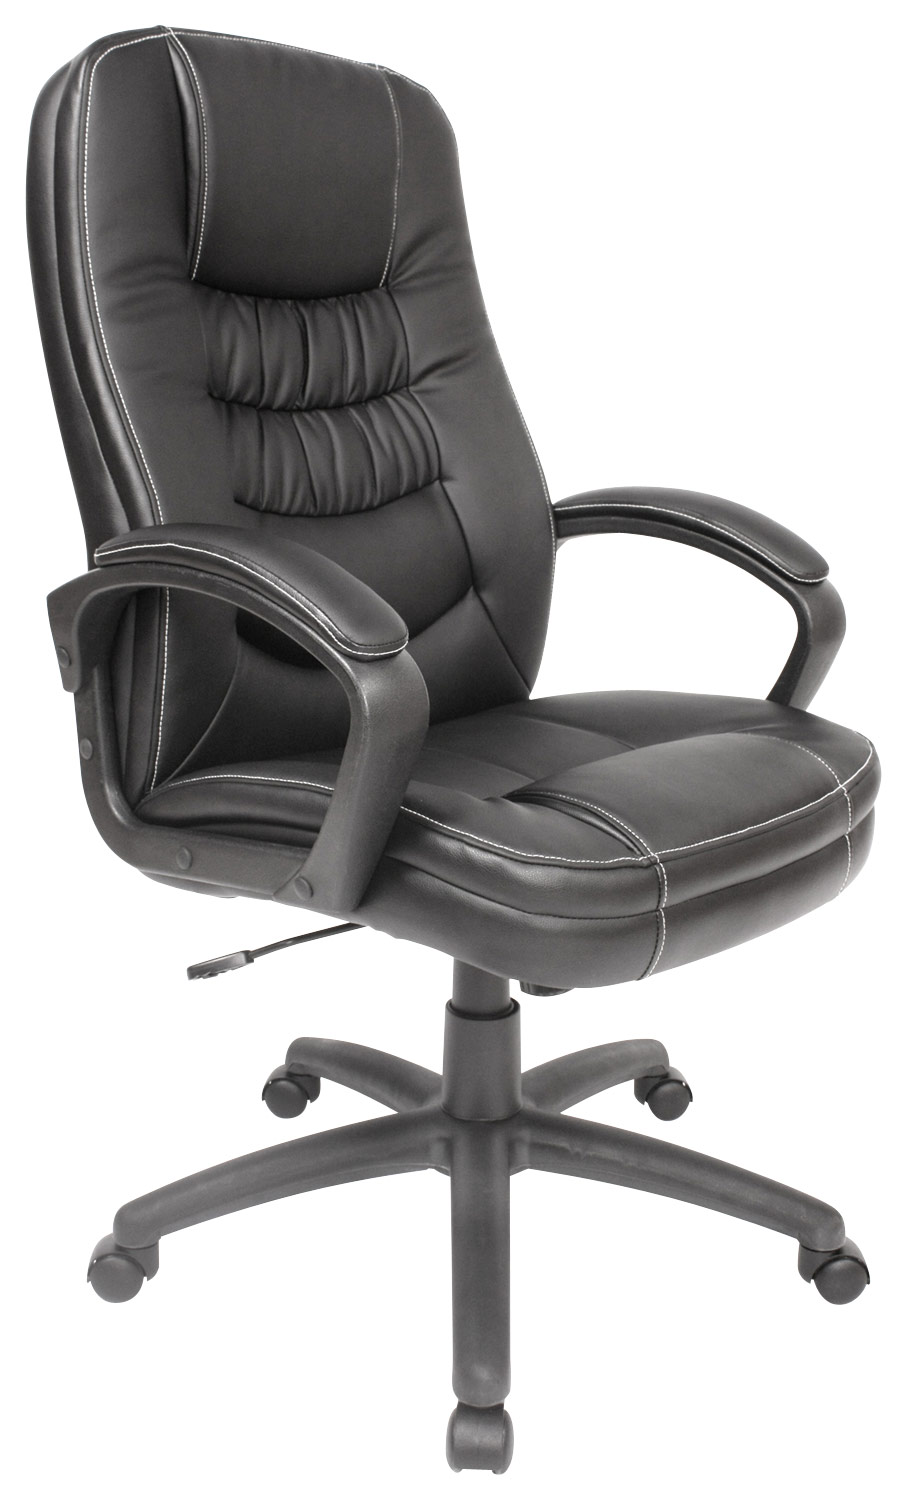 Comfort Products Inc. - Leather Executive Chair - Black - Larger Front